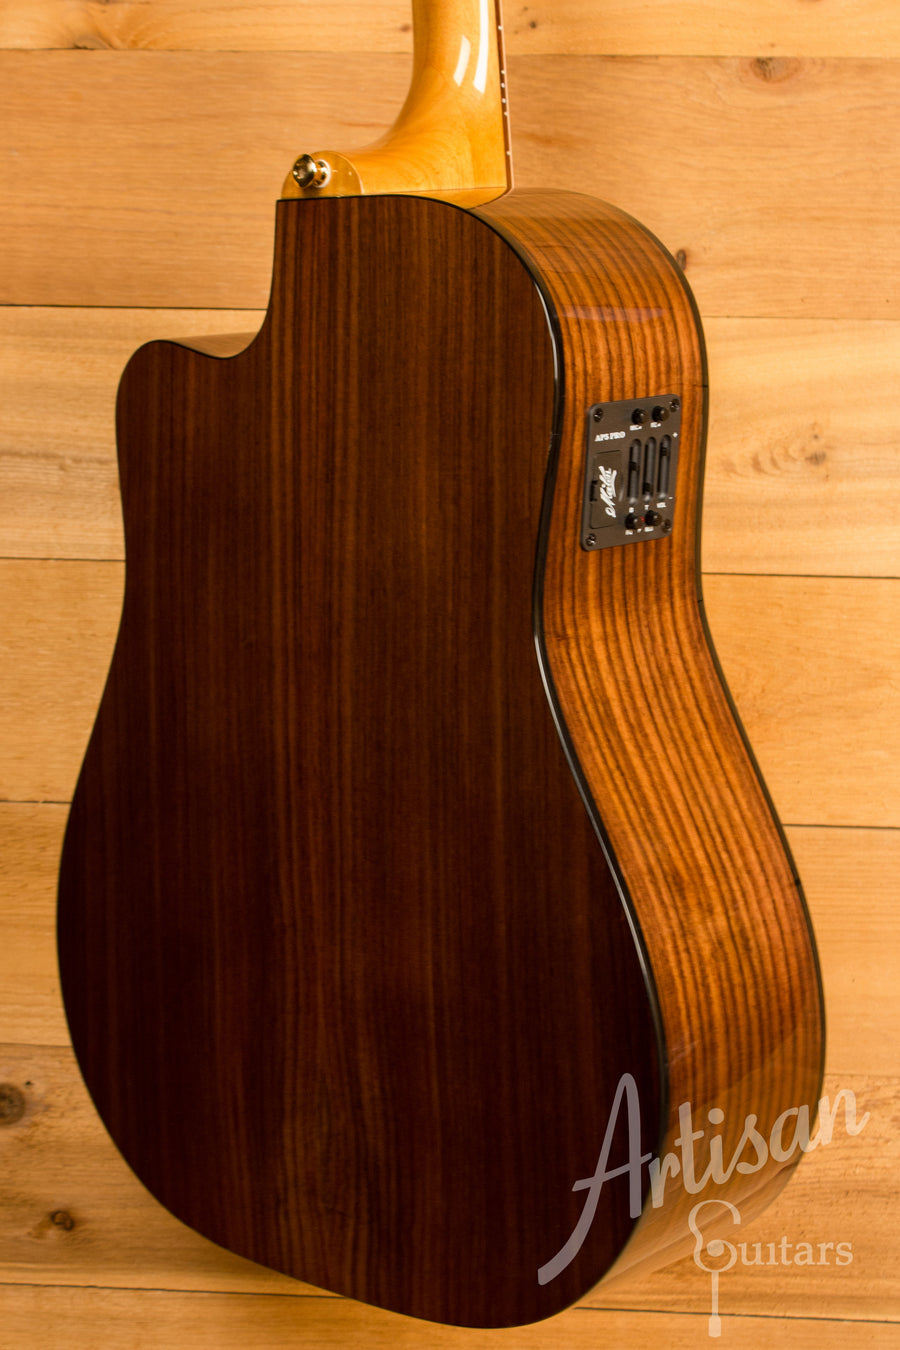 Maton TE1 Guitar Tommy Emmanuel Artist Sitka Spruce and Indian Rosewood AP5 Pro Pre-Owned 2014 ID-11323